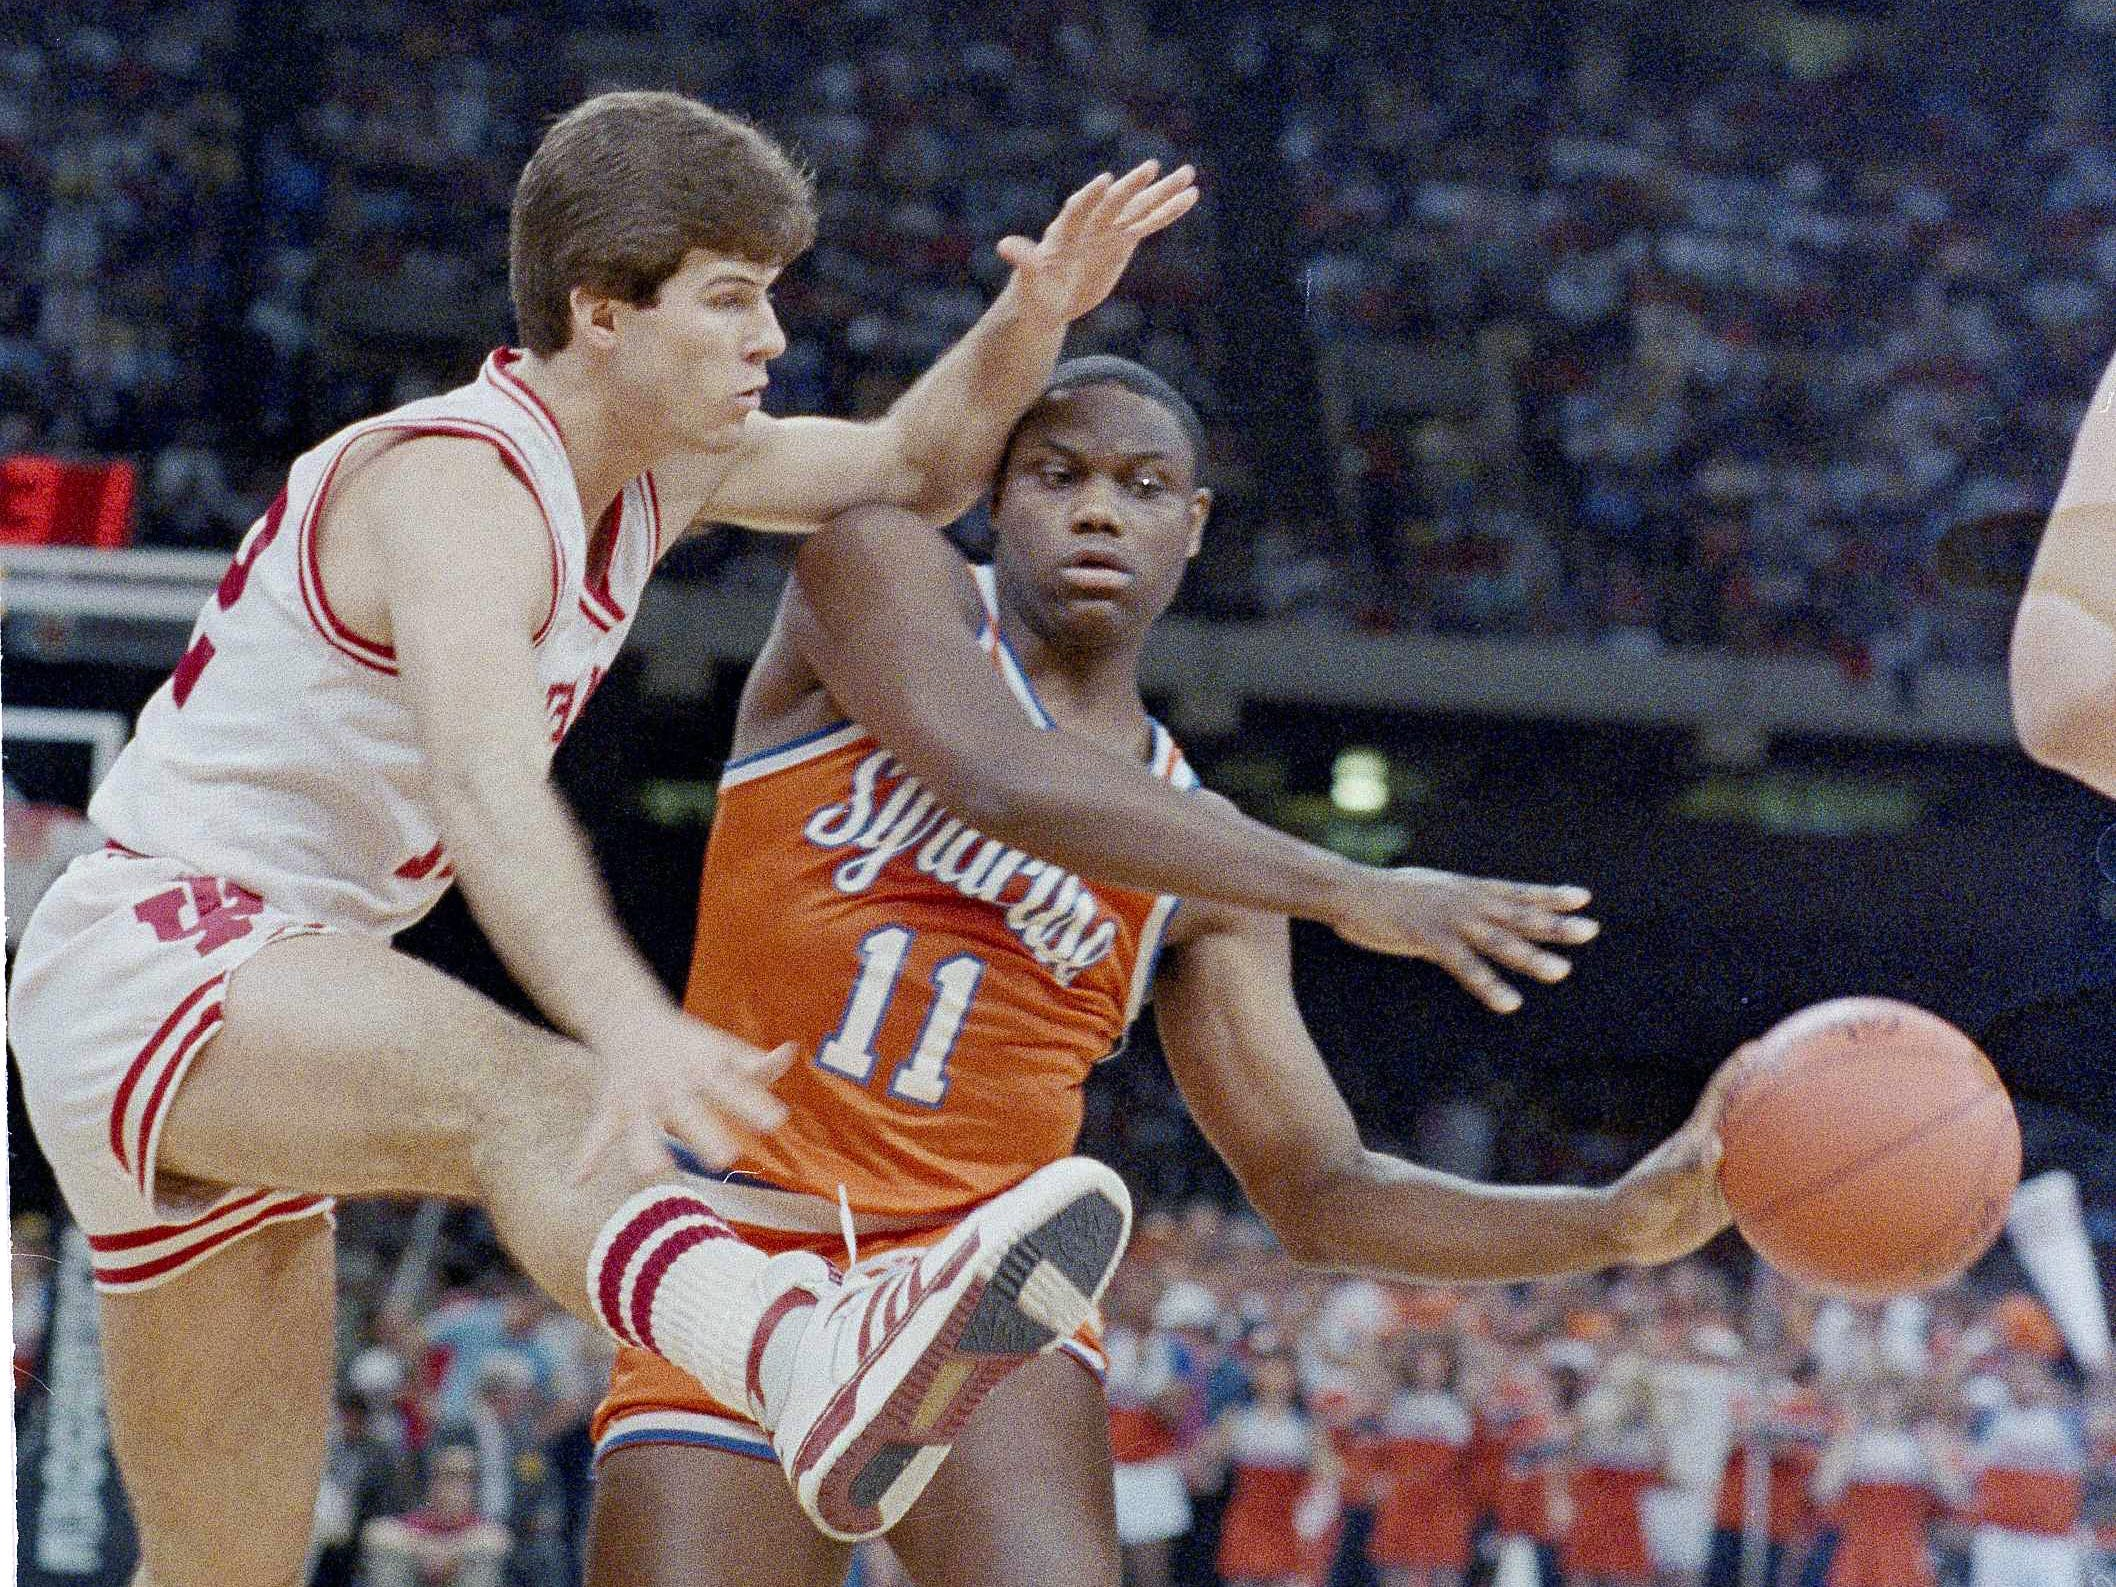 Indiana's Steve Alford tries to block a pass by Syracuse's Greg Monroe, 11, during action in the NCAA Championship game in New Orleans Monday, March 30, 1987.